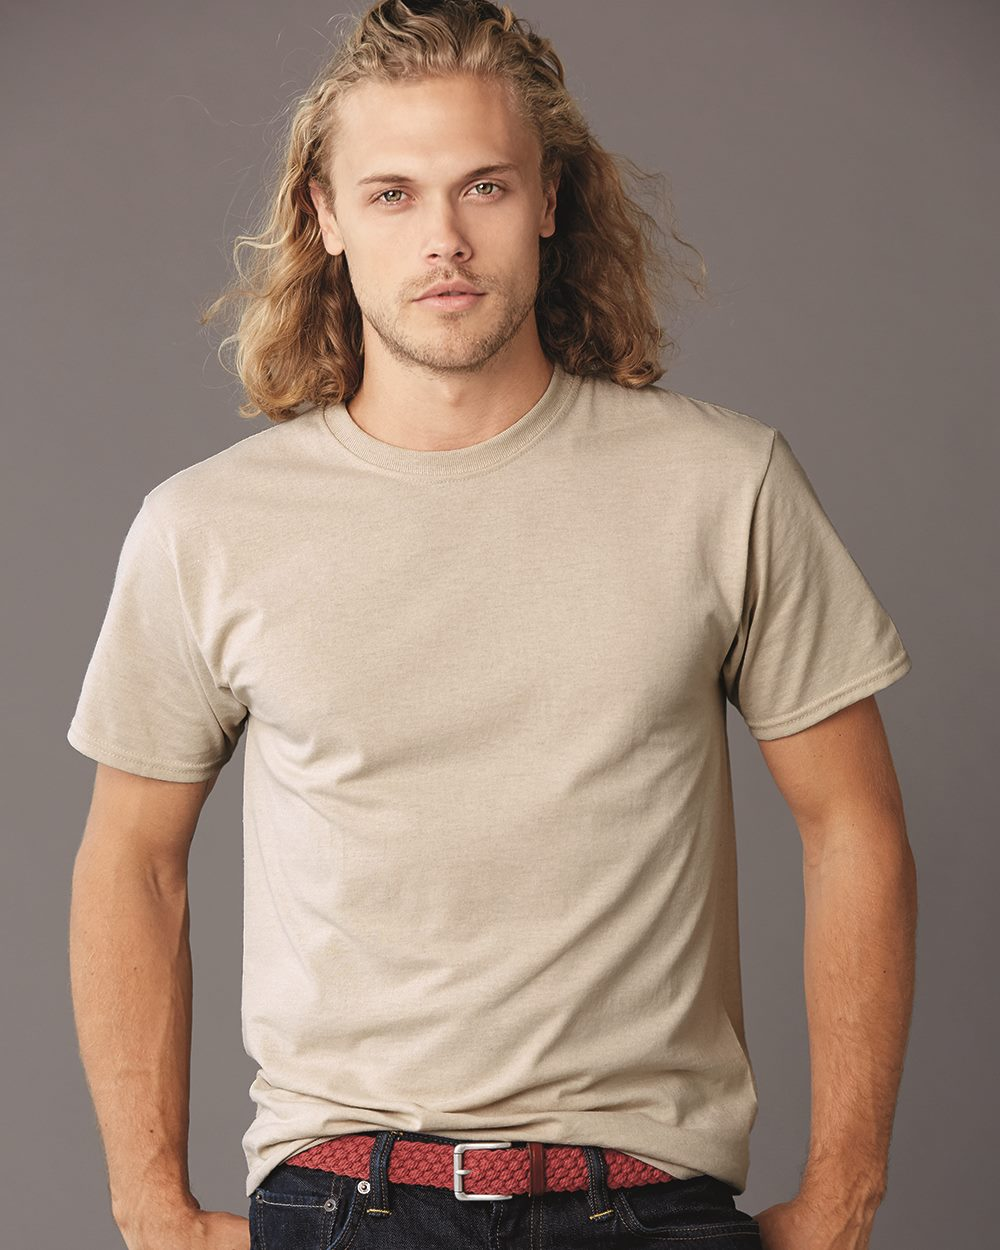 Jerzees Dri Power Active 50/50 T-shirt - 29M             Starting at $3.00 Blank